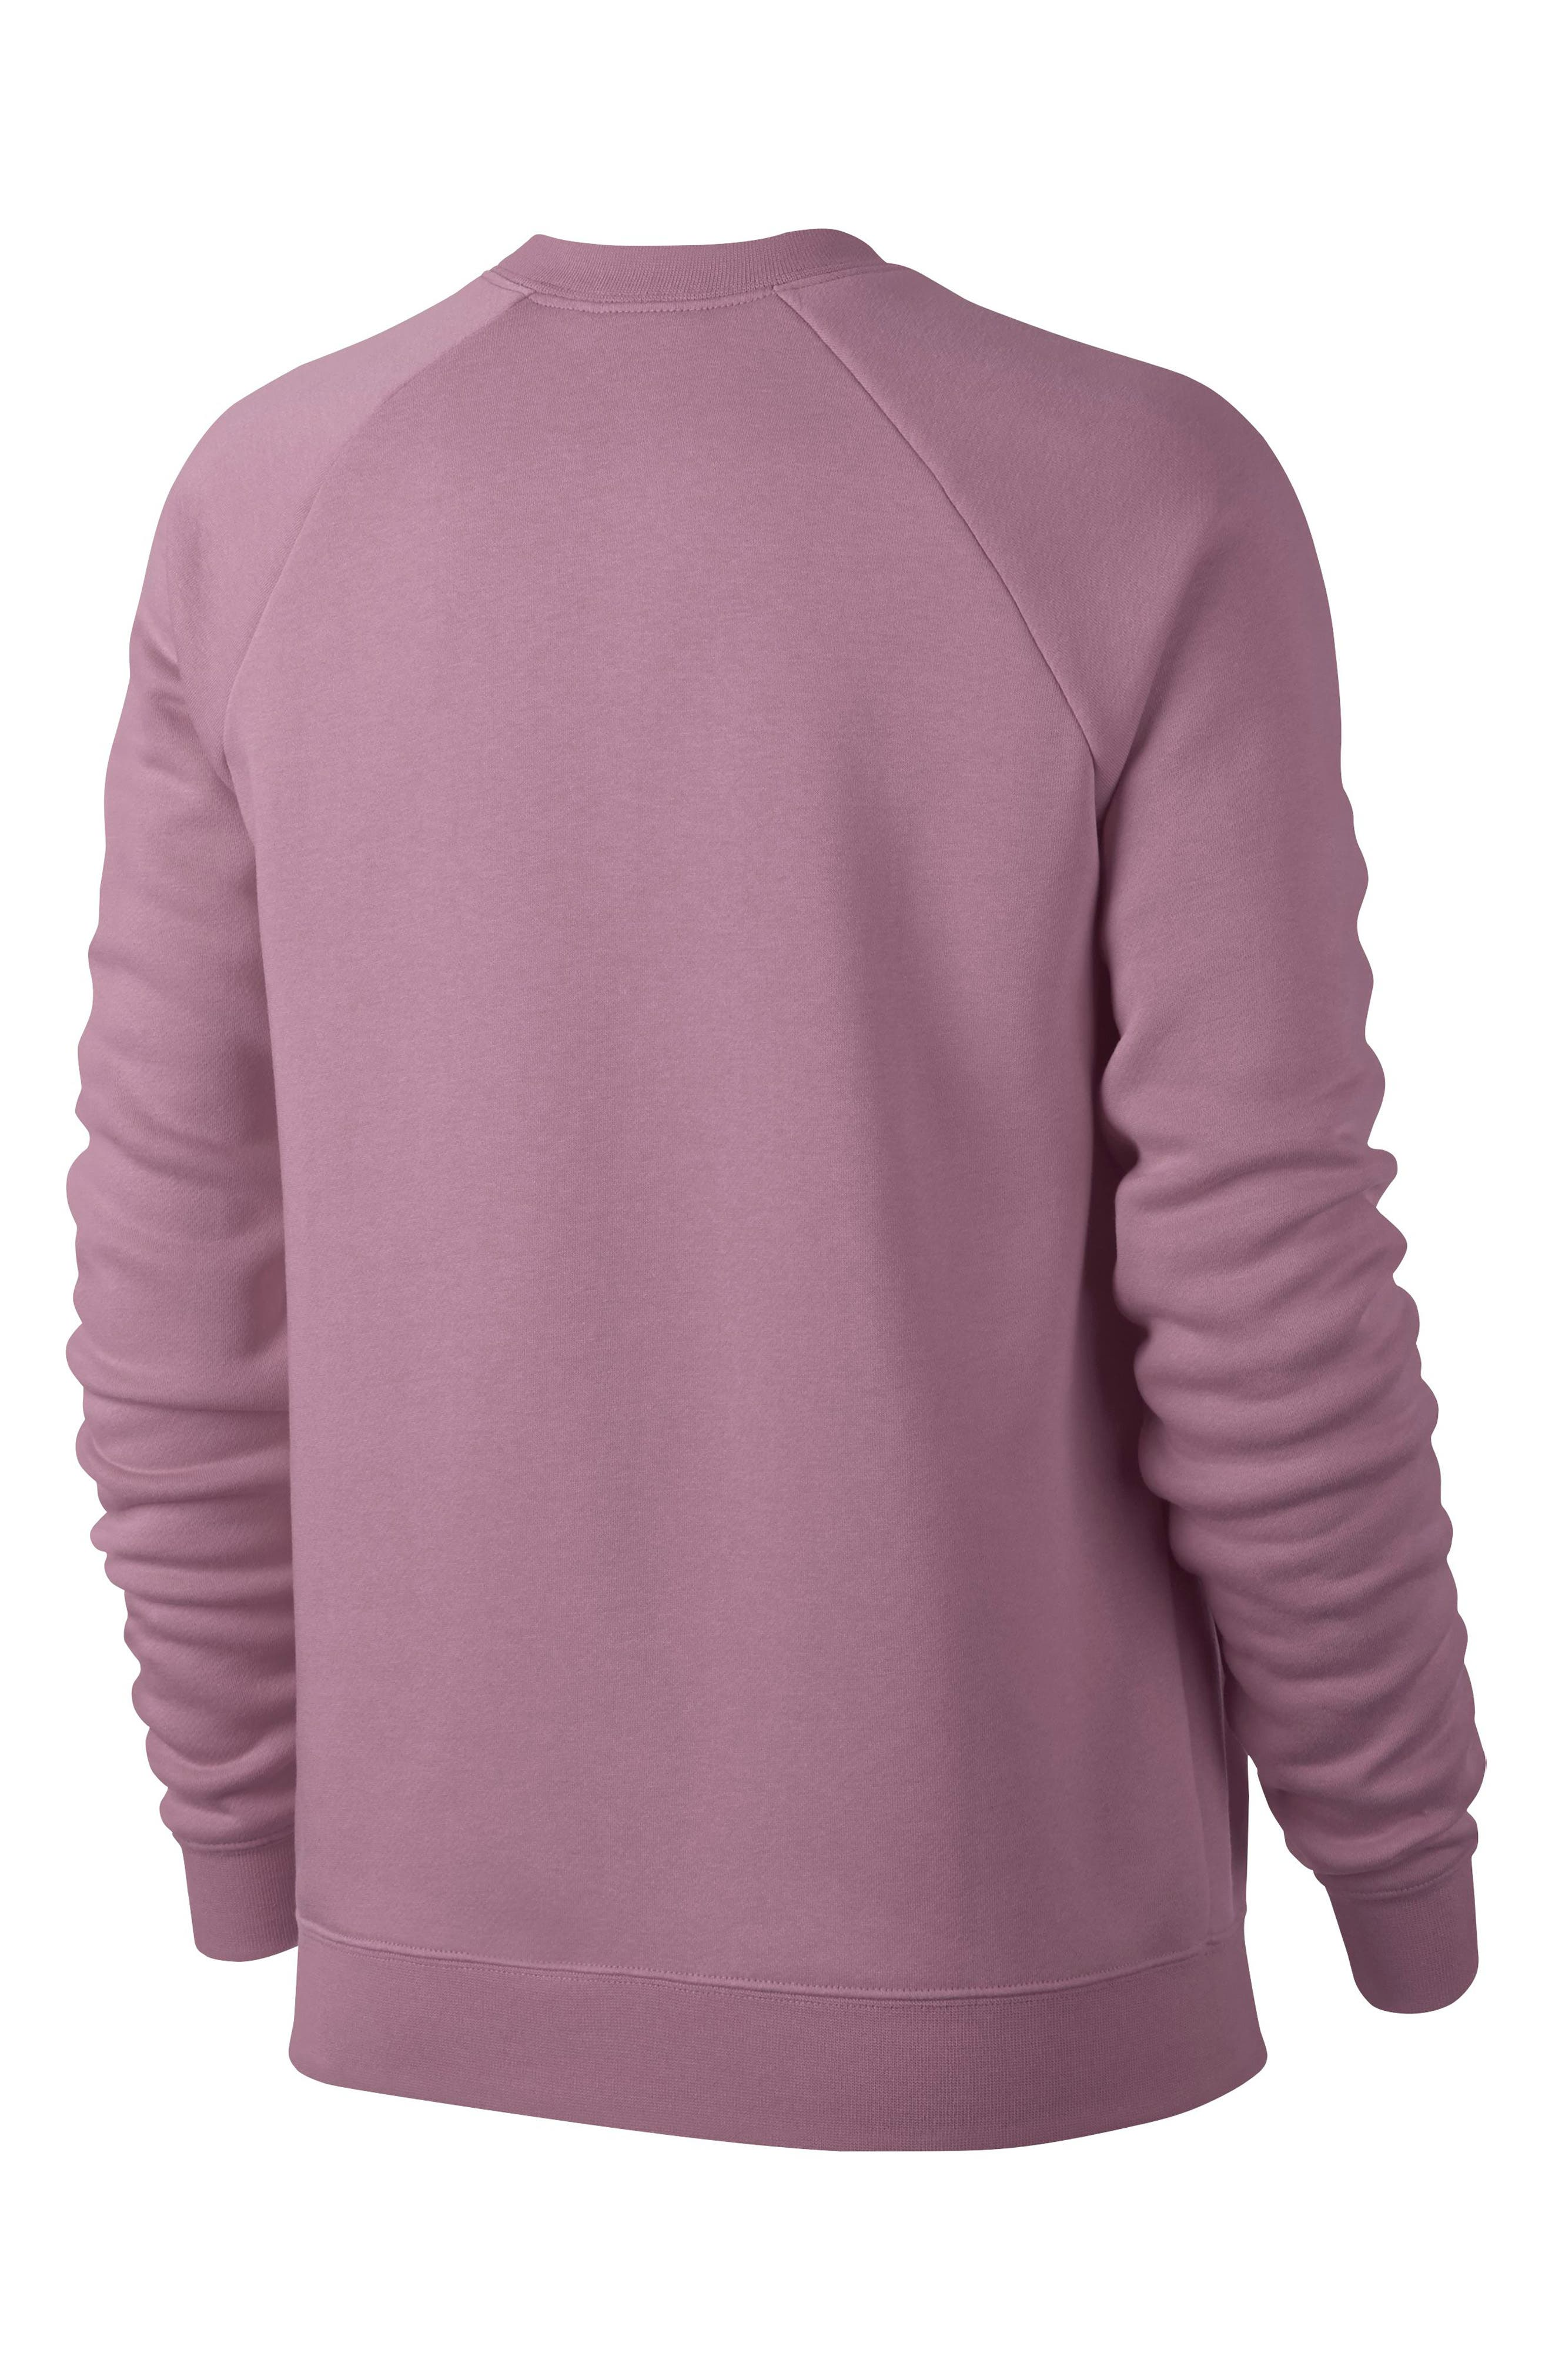 NIKE, NSW Rally Sweatshirt, Alternate thumbnail 8, color, PLUM DUST/ WHITE